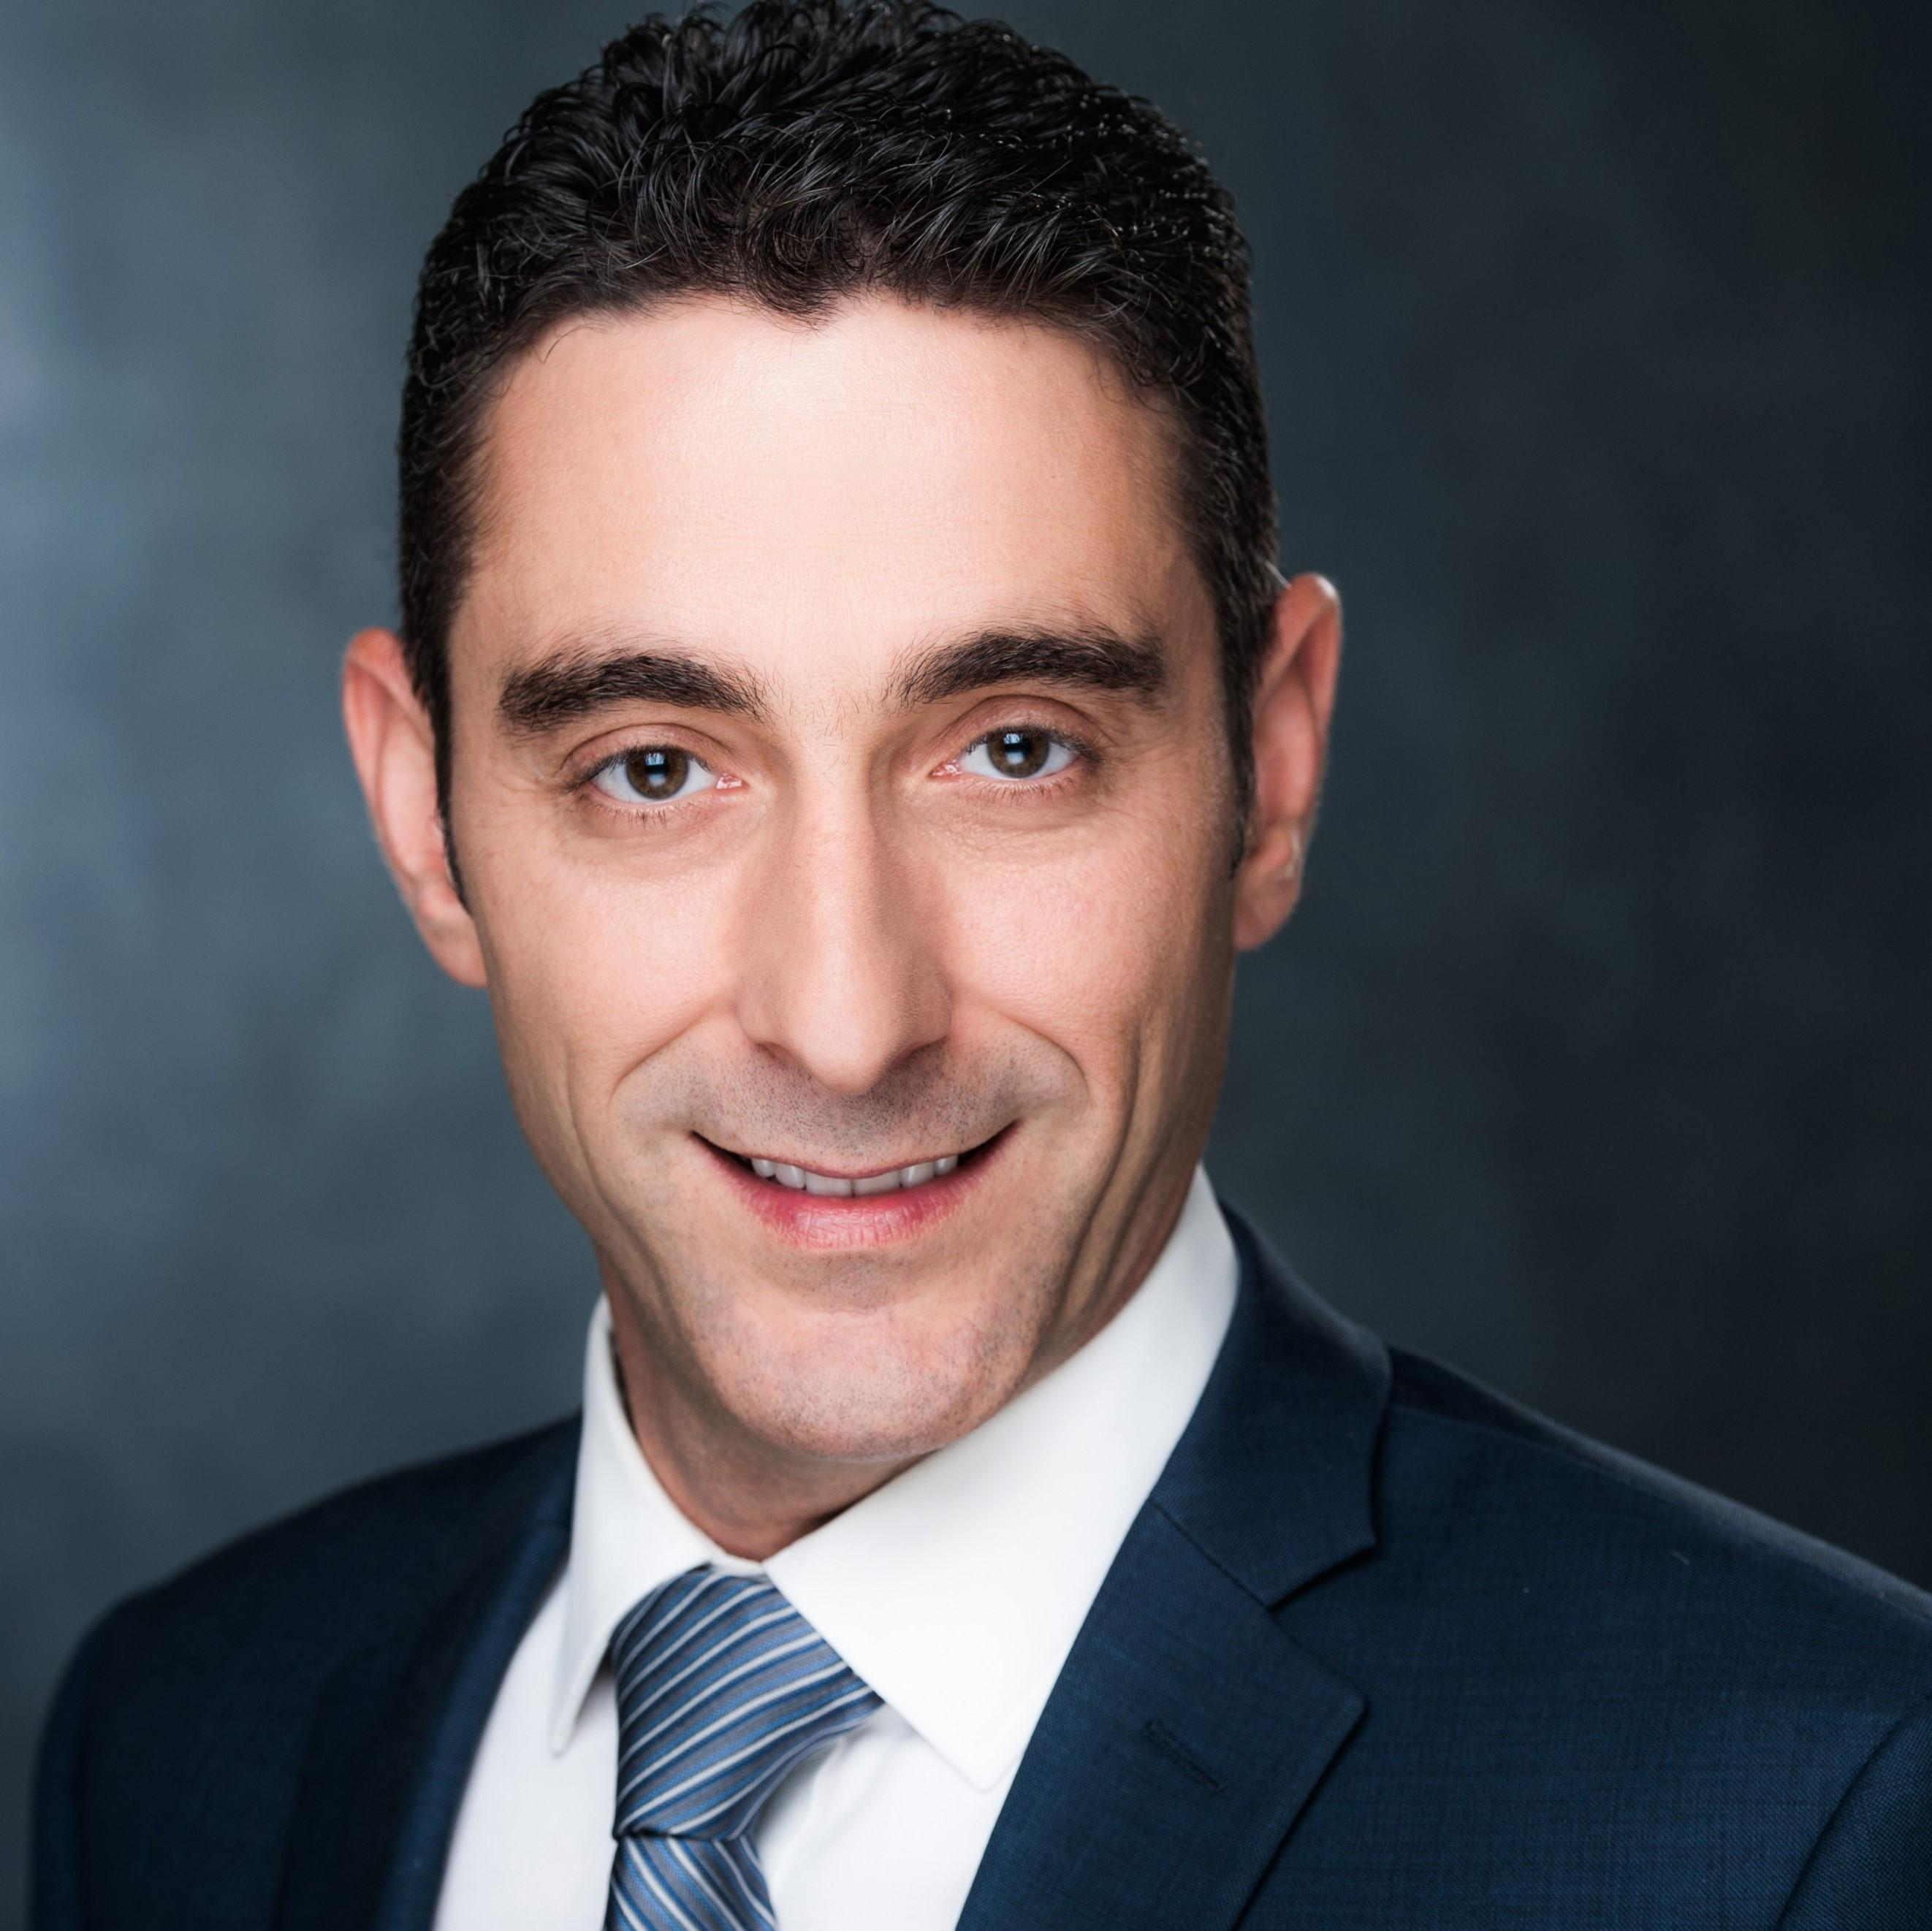 EVANGELOS BAXEVANIS  Your Financial Professional & Insurance Agent